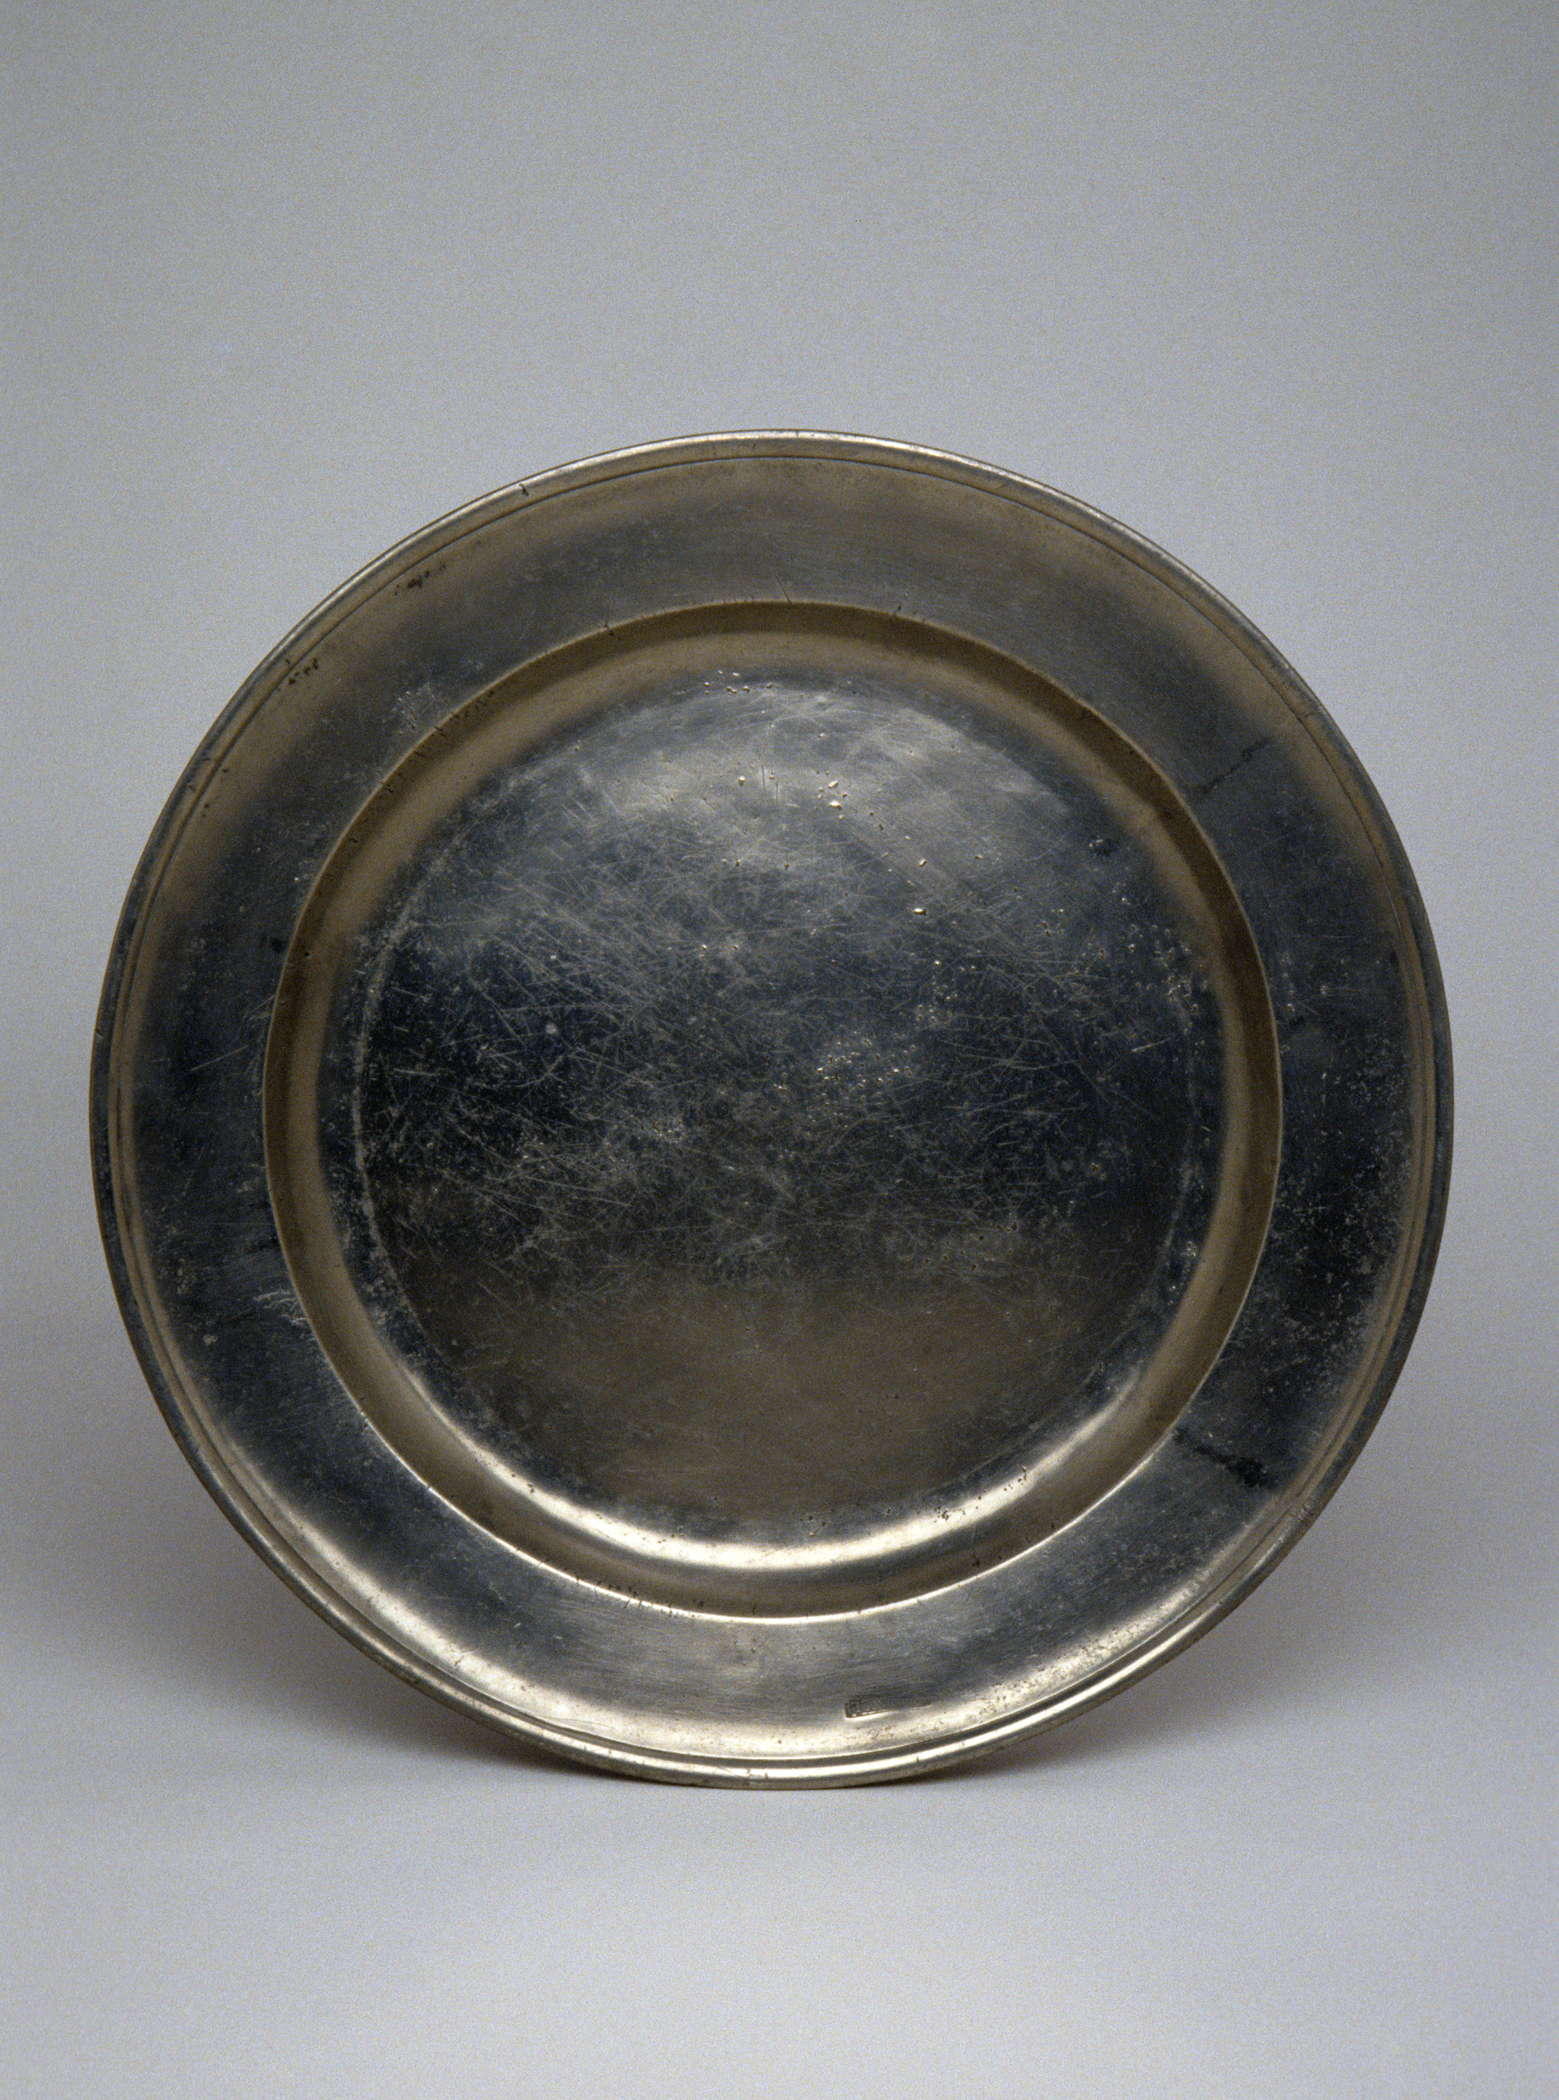 1953.0028 Pewter plate